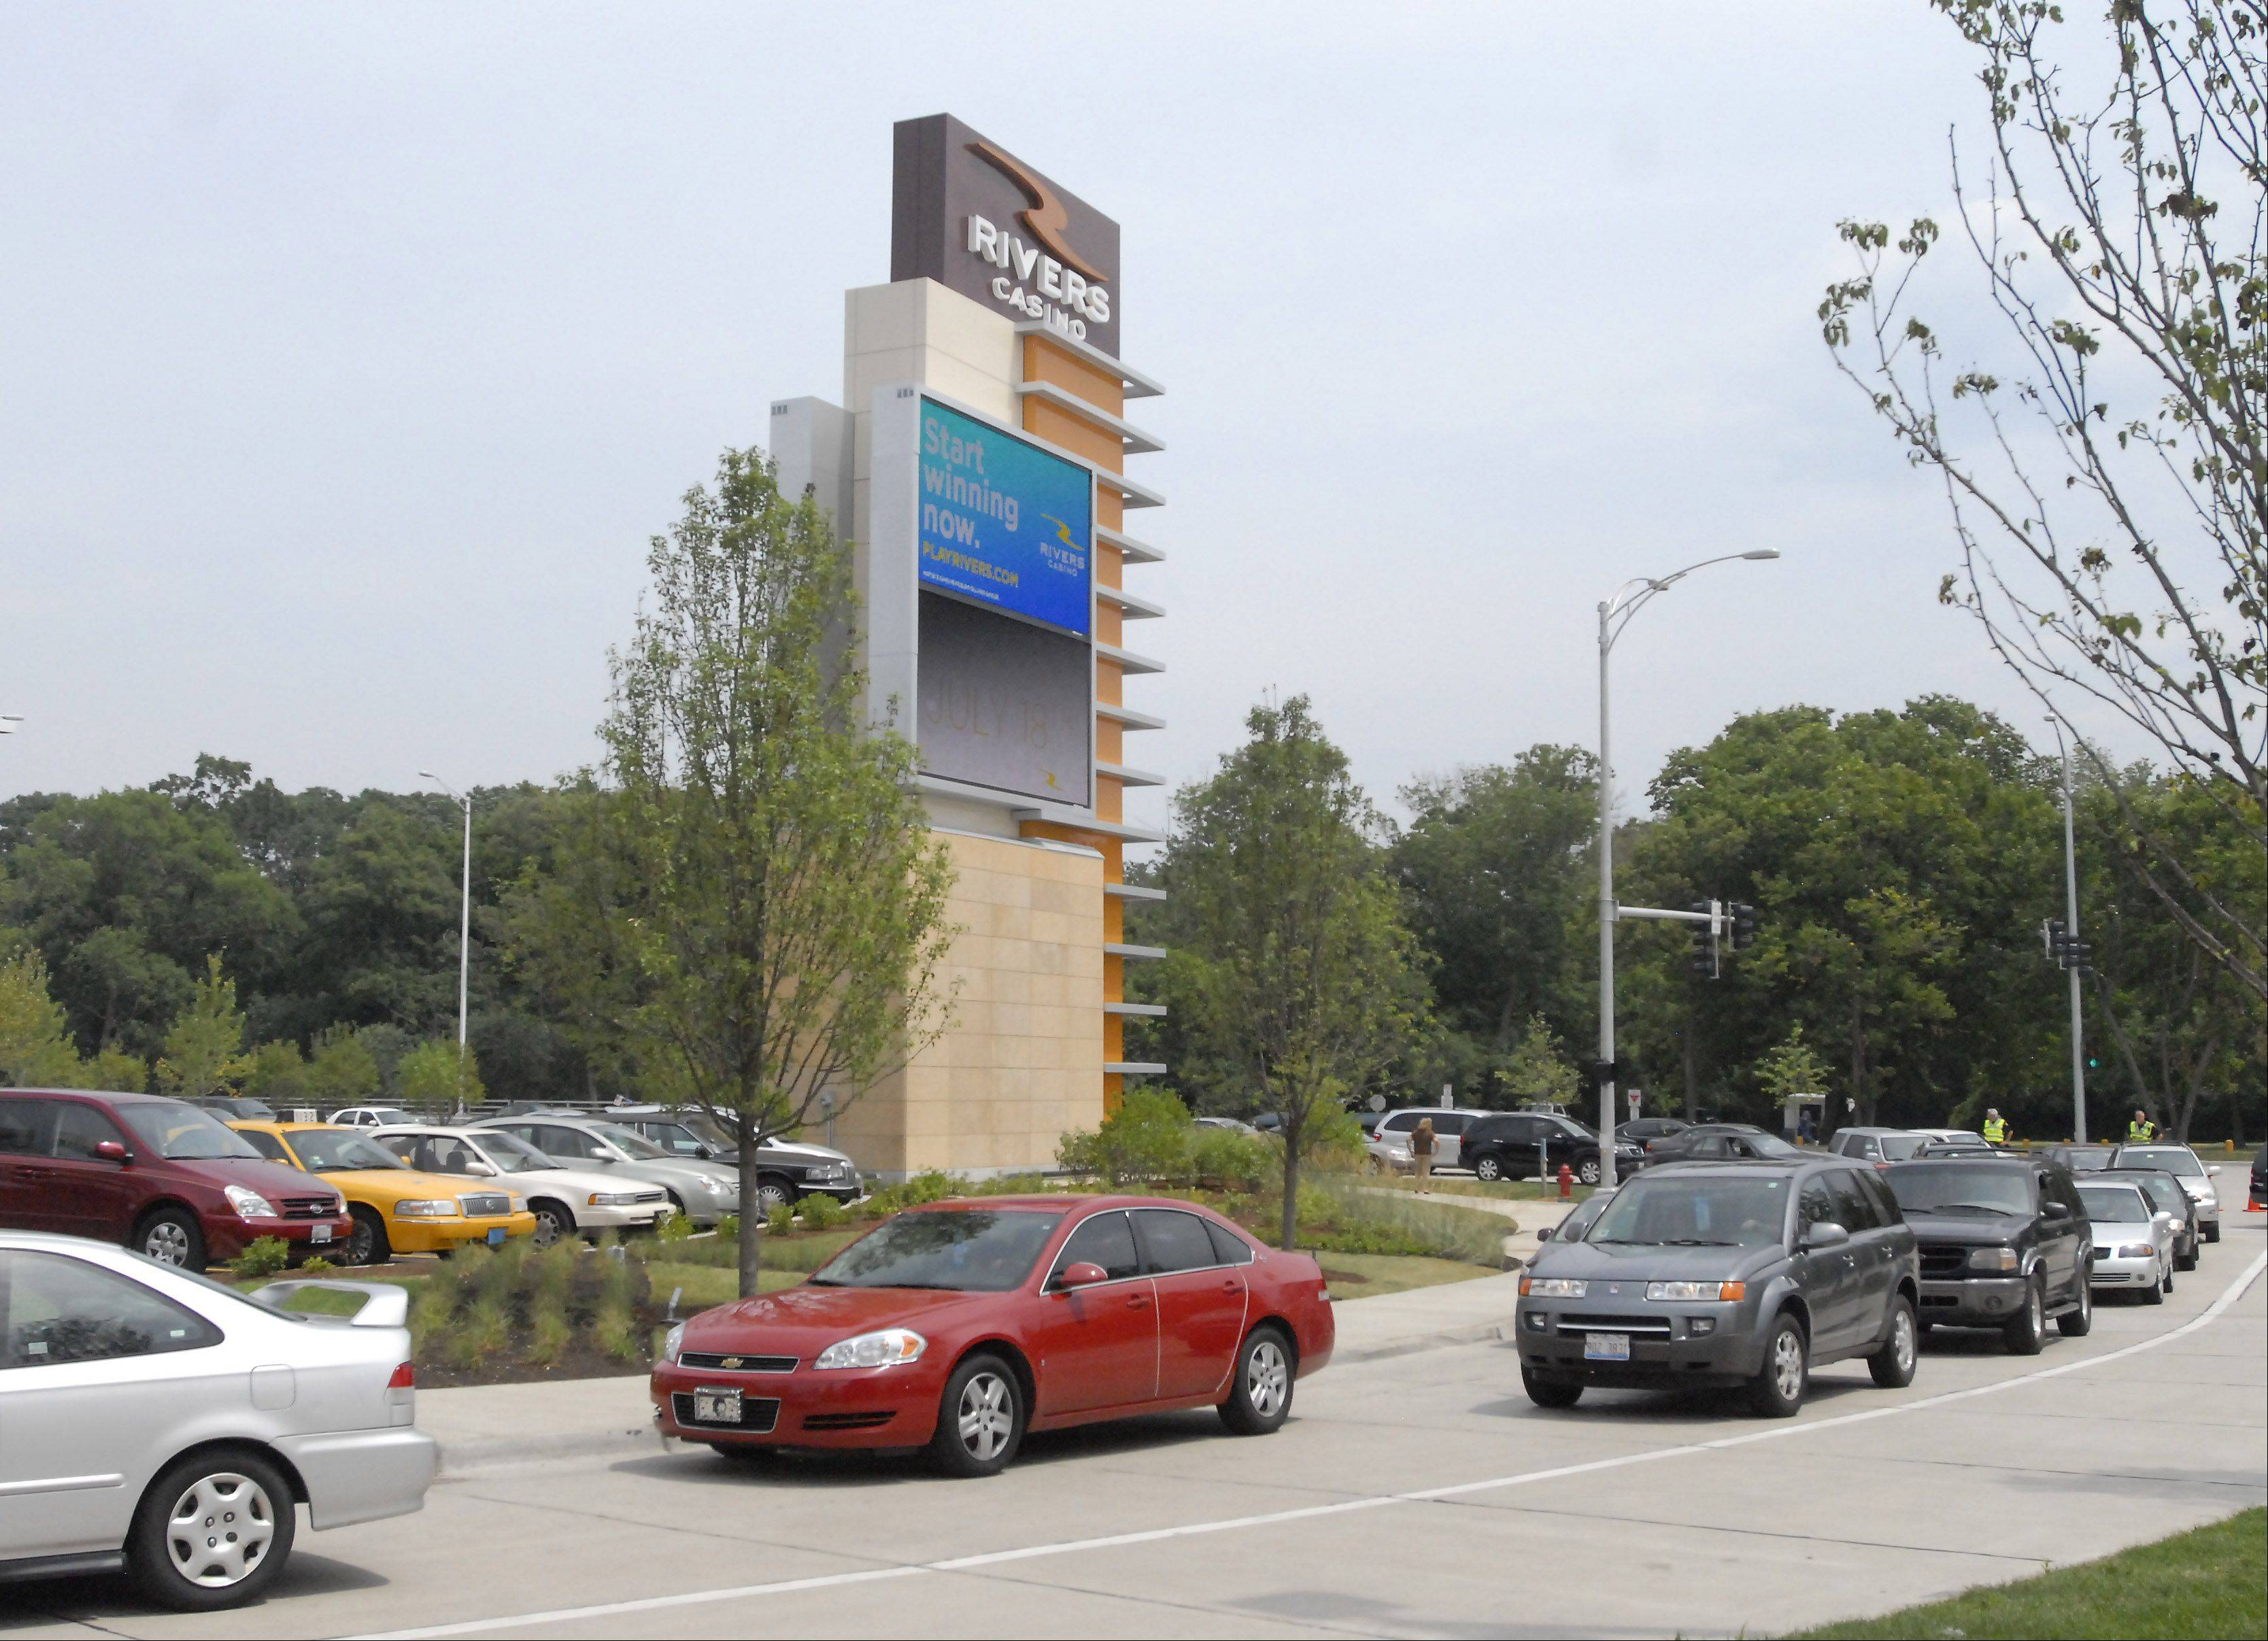 Some Rivers Casino employees might form union